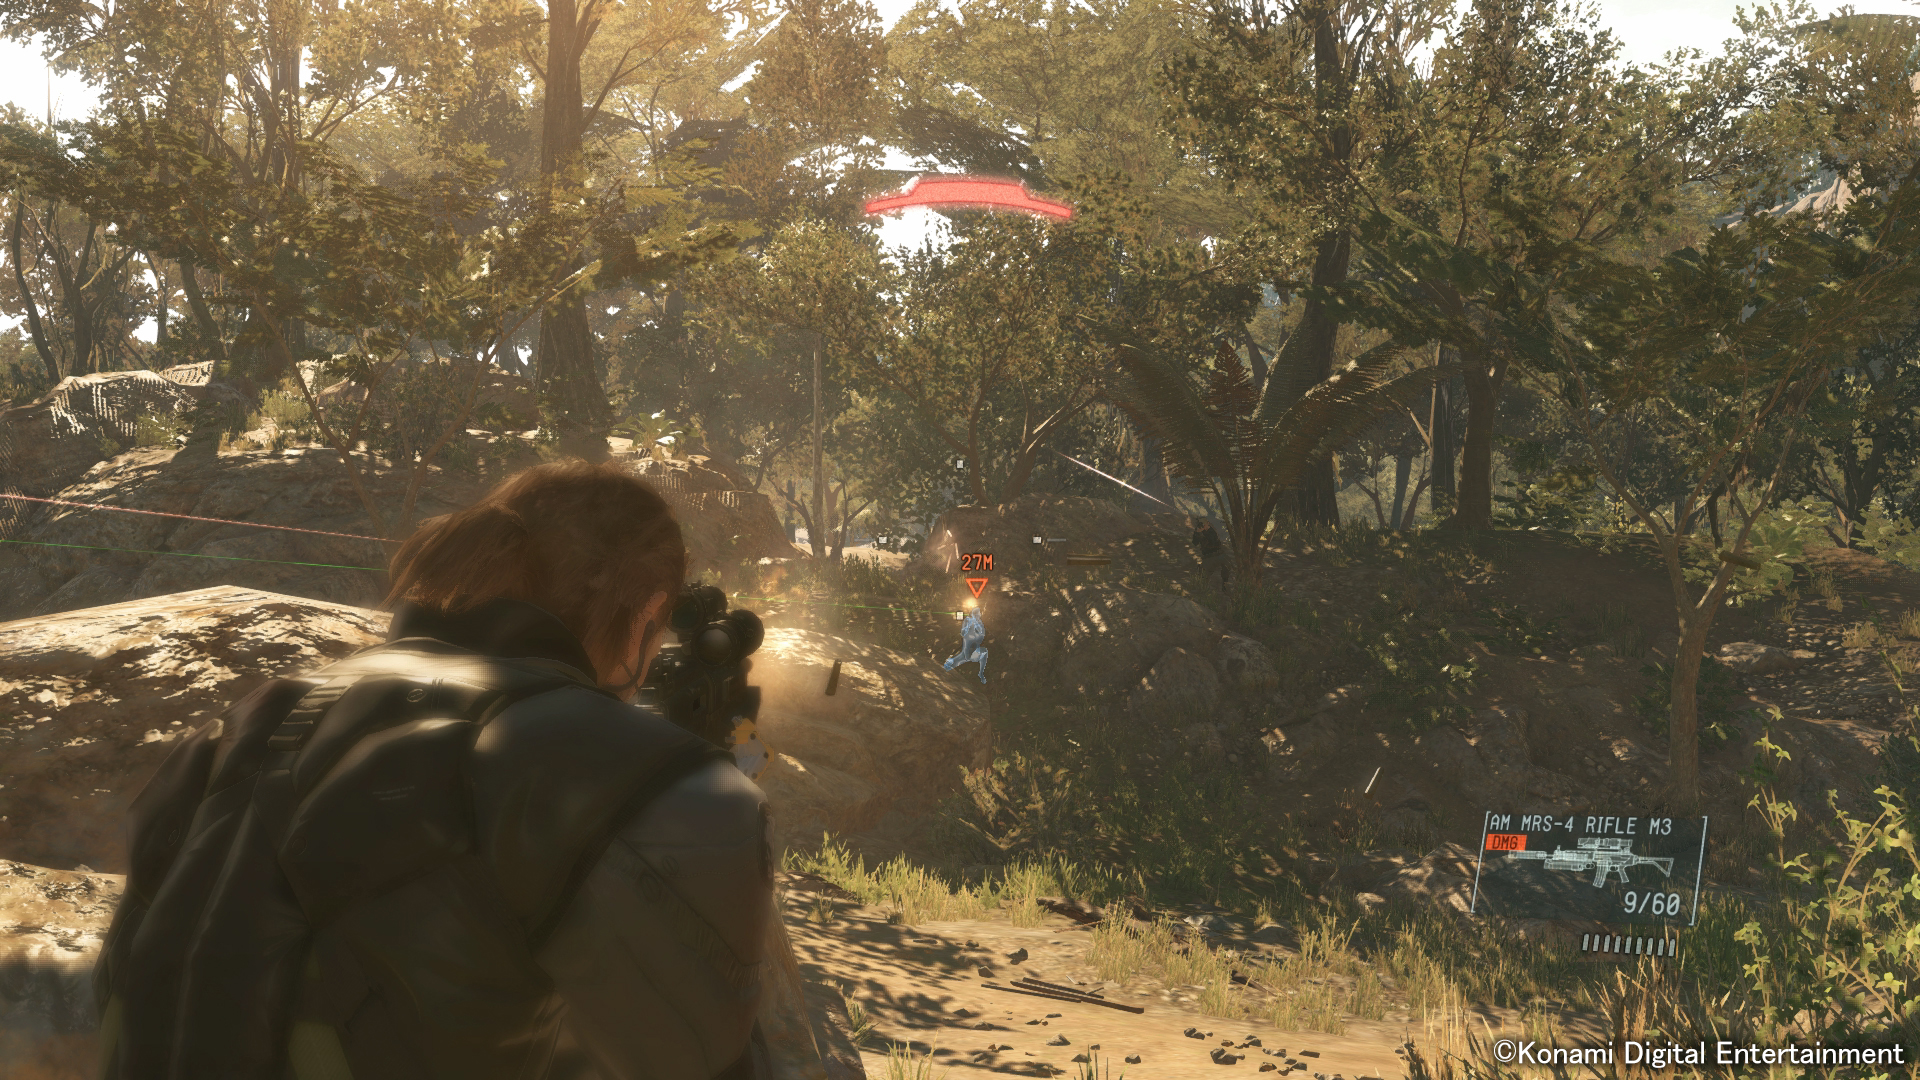 Here's How the Save Data Transfer From Ground Zeroes to The Phantom Pain Work